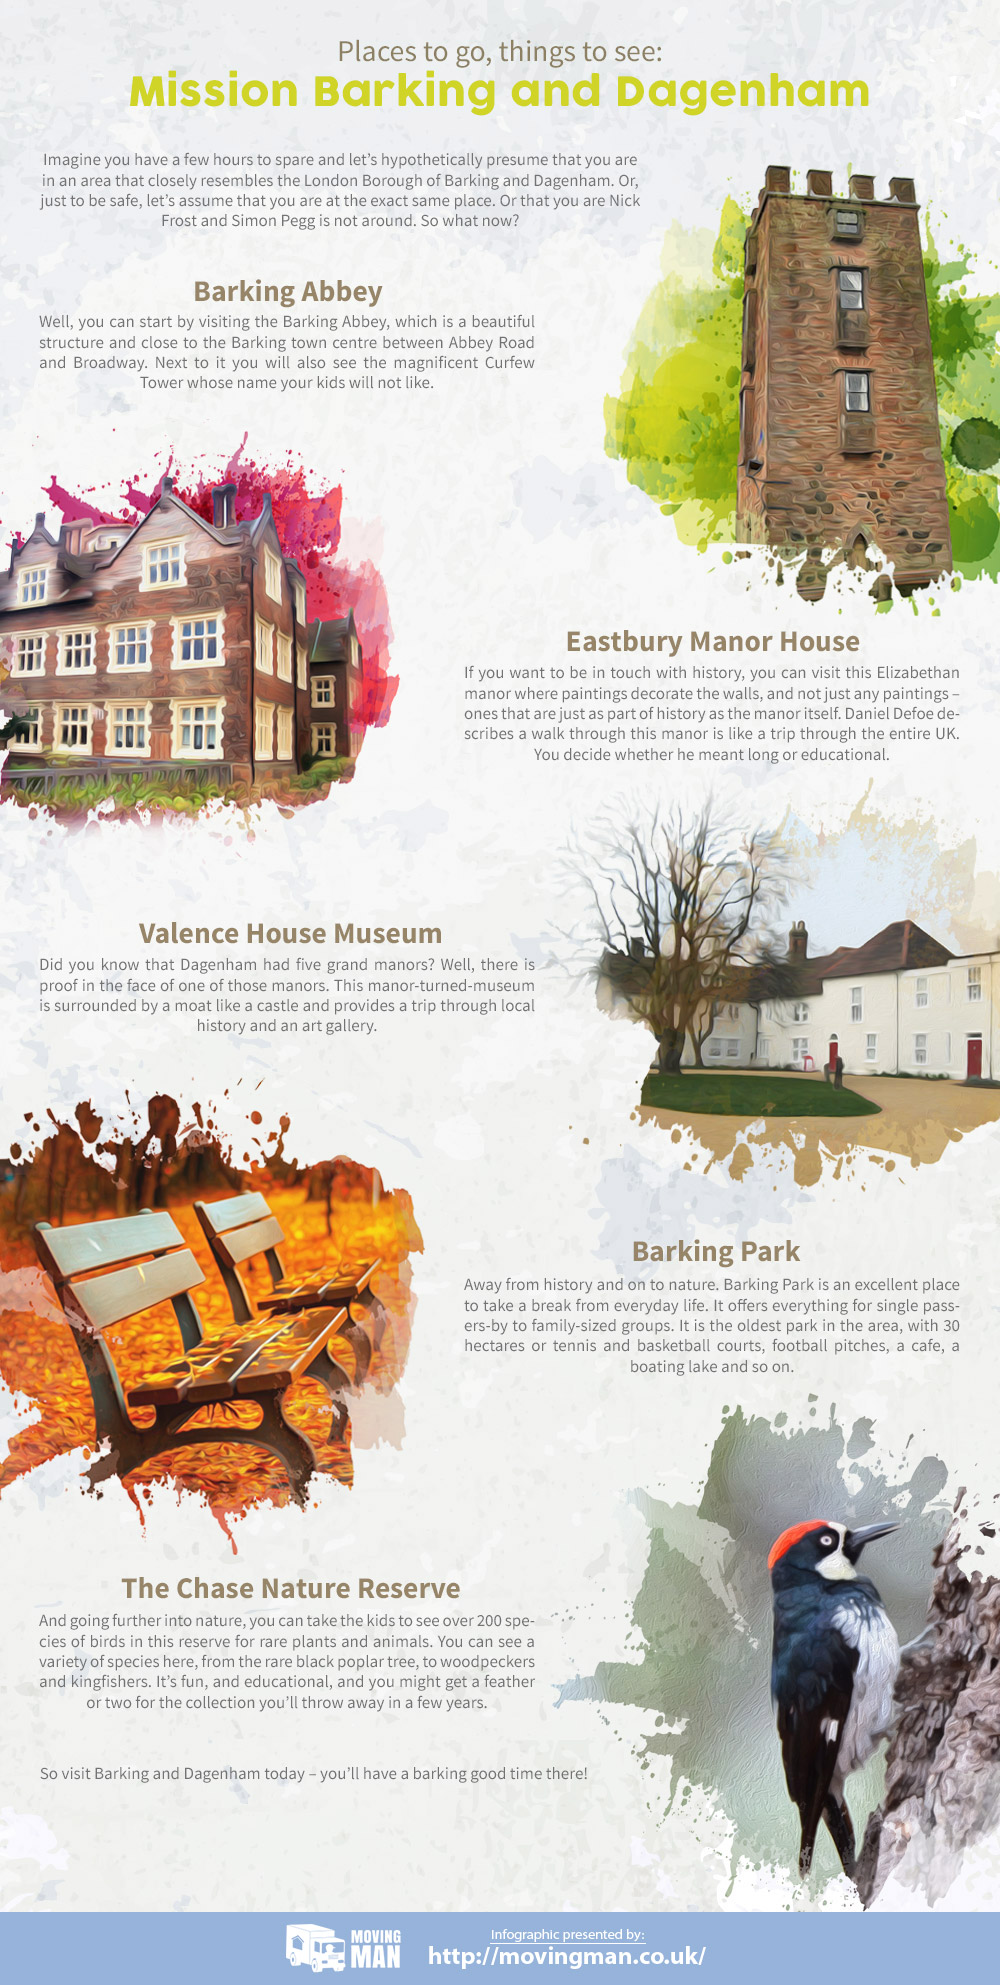 Places to Visit near Barking and Dagenham